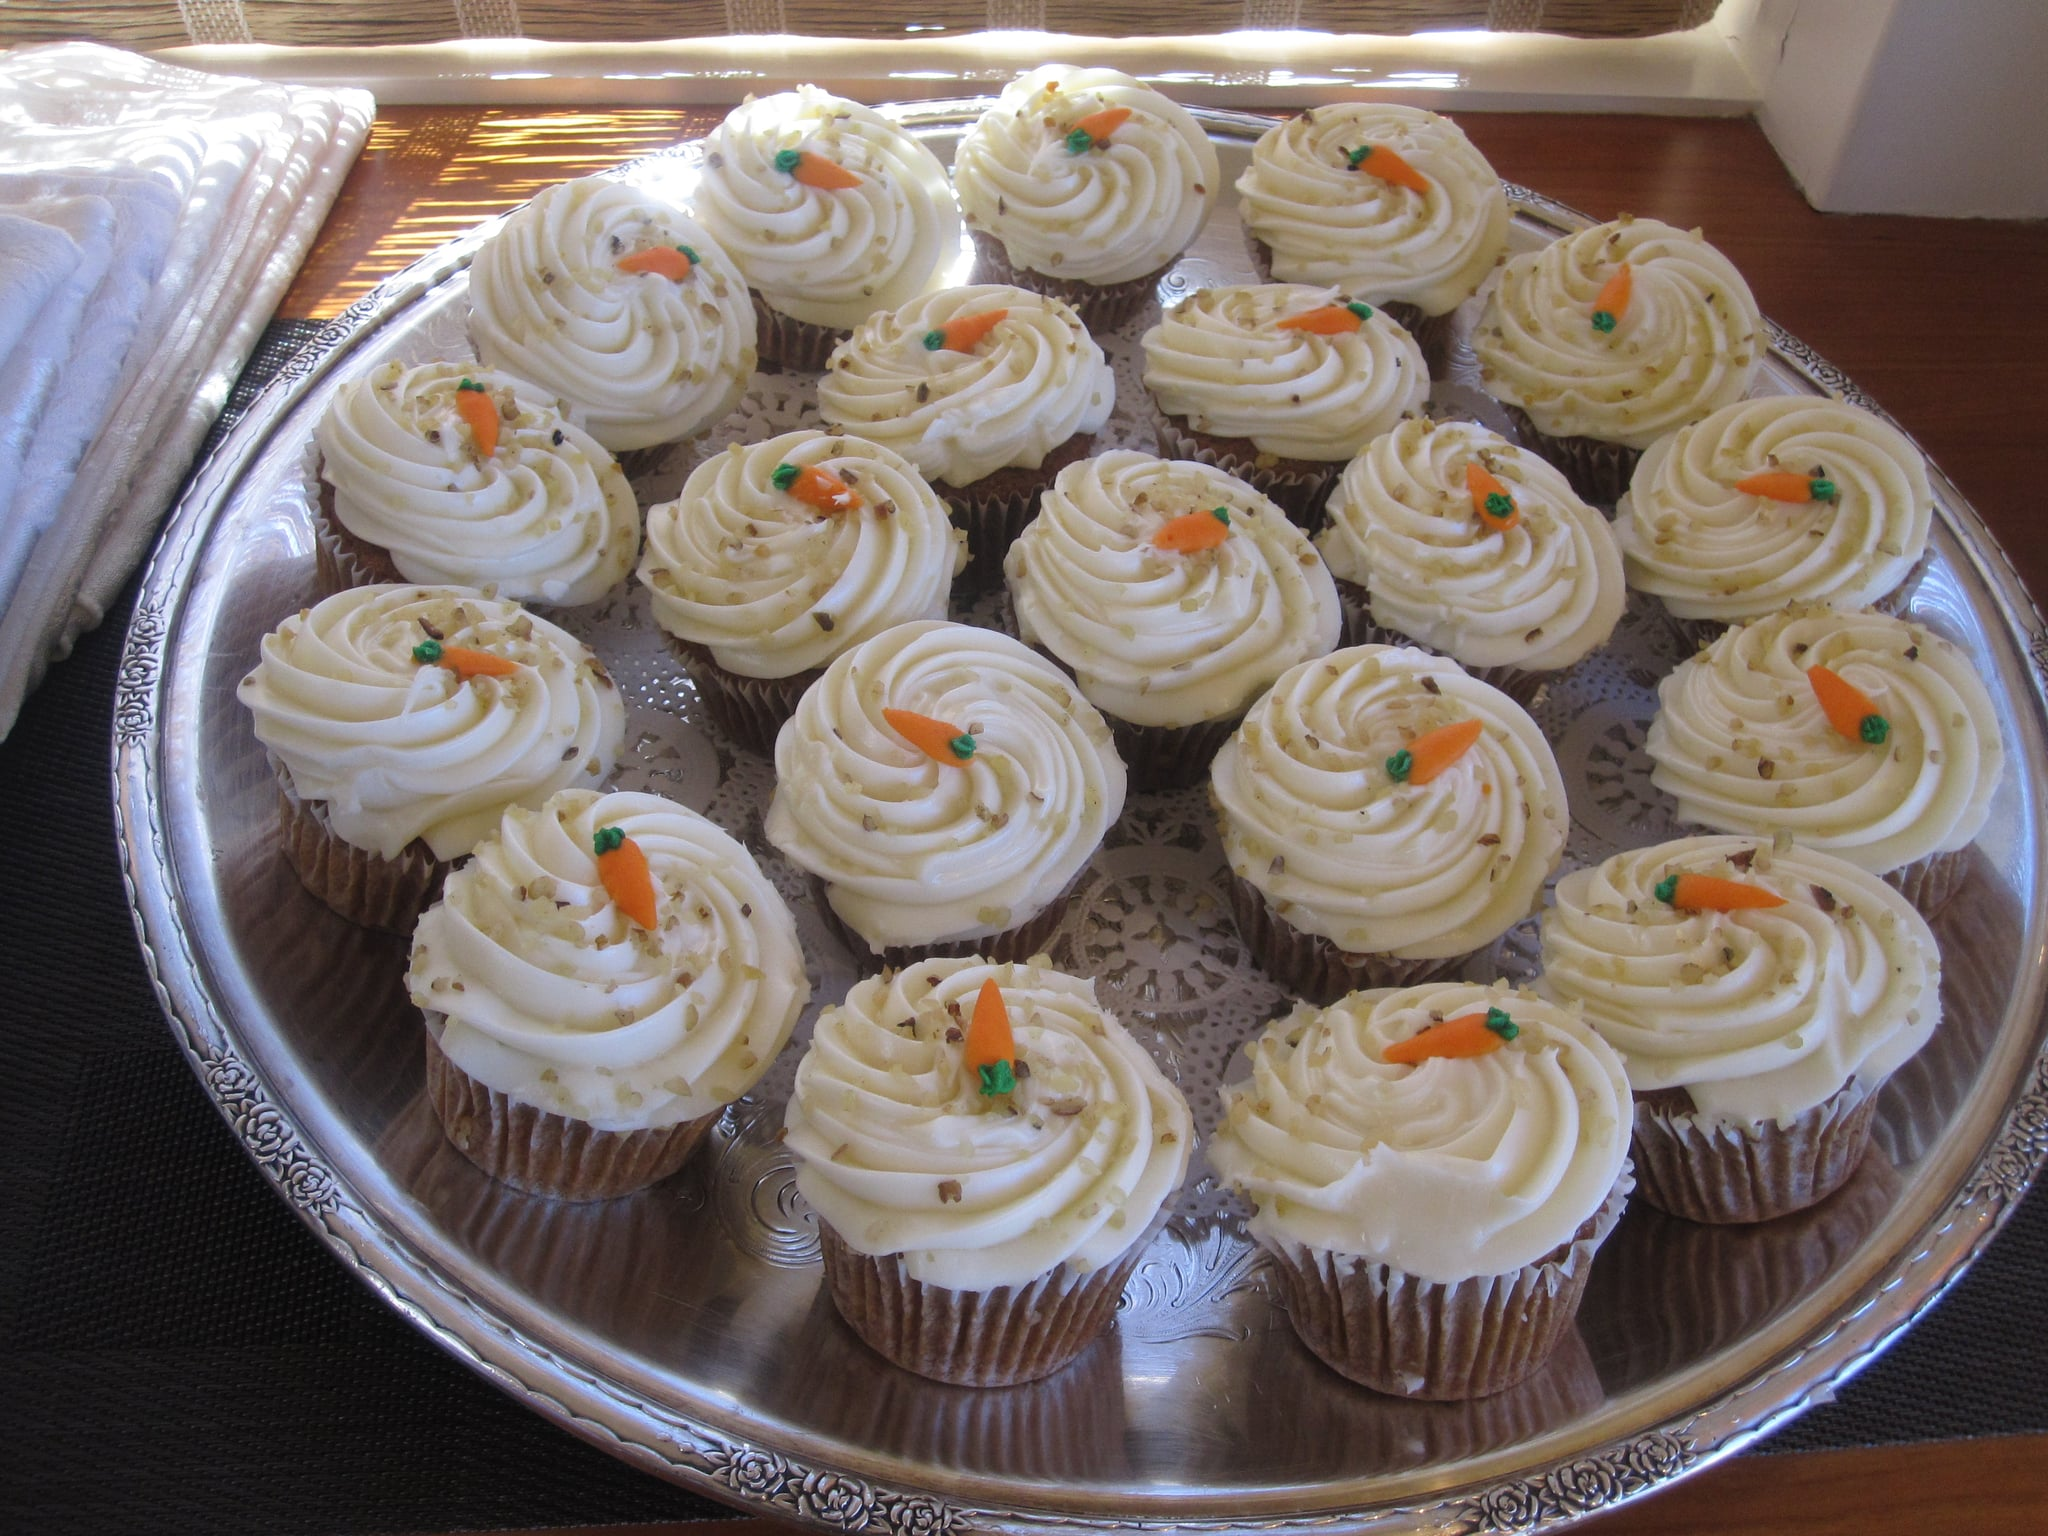 The bride's favorite flavor of cake is carrot. Naturally they had enough carrot cupcakes for the crowd. These super moist cakes with delicious cream cheese frosting were from Sweet Things.